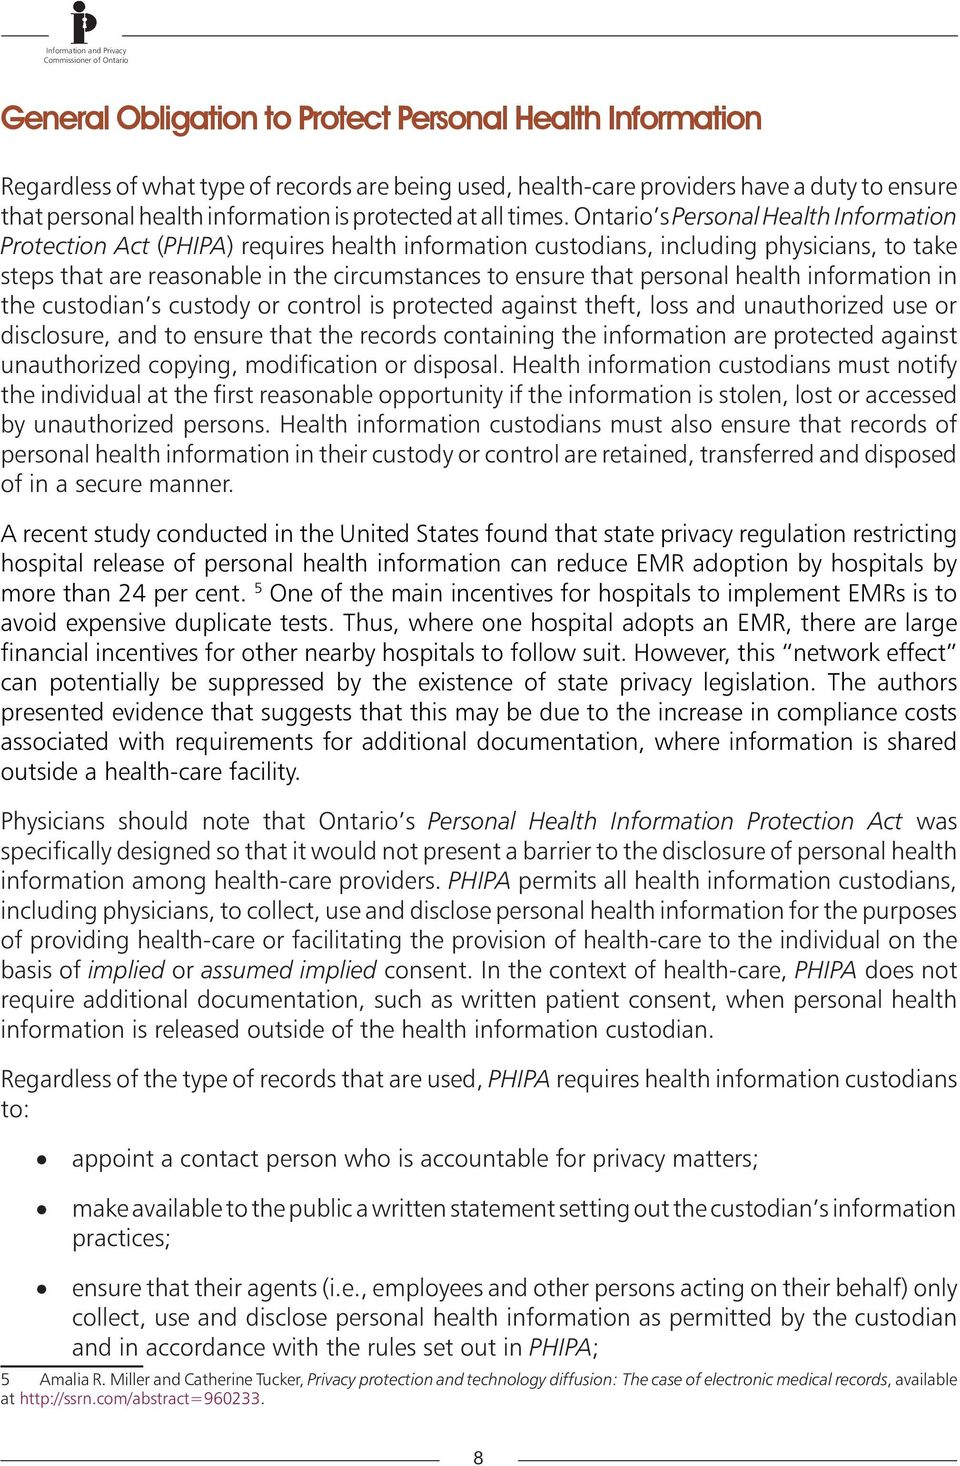 Ontario s Personal Health Information Protection Act (PHIPA) requires health information custodians, including physicians, to take steps that are reasonable in the circumstances to ensure that